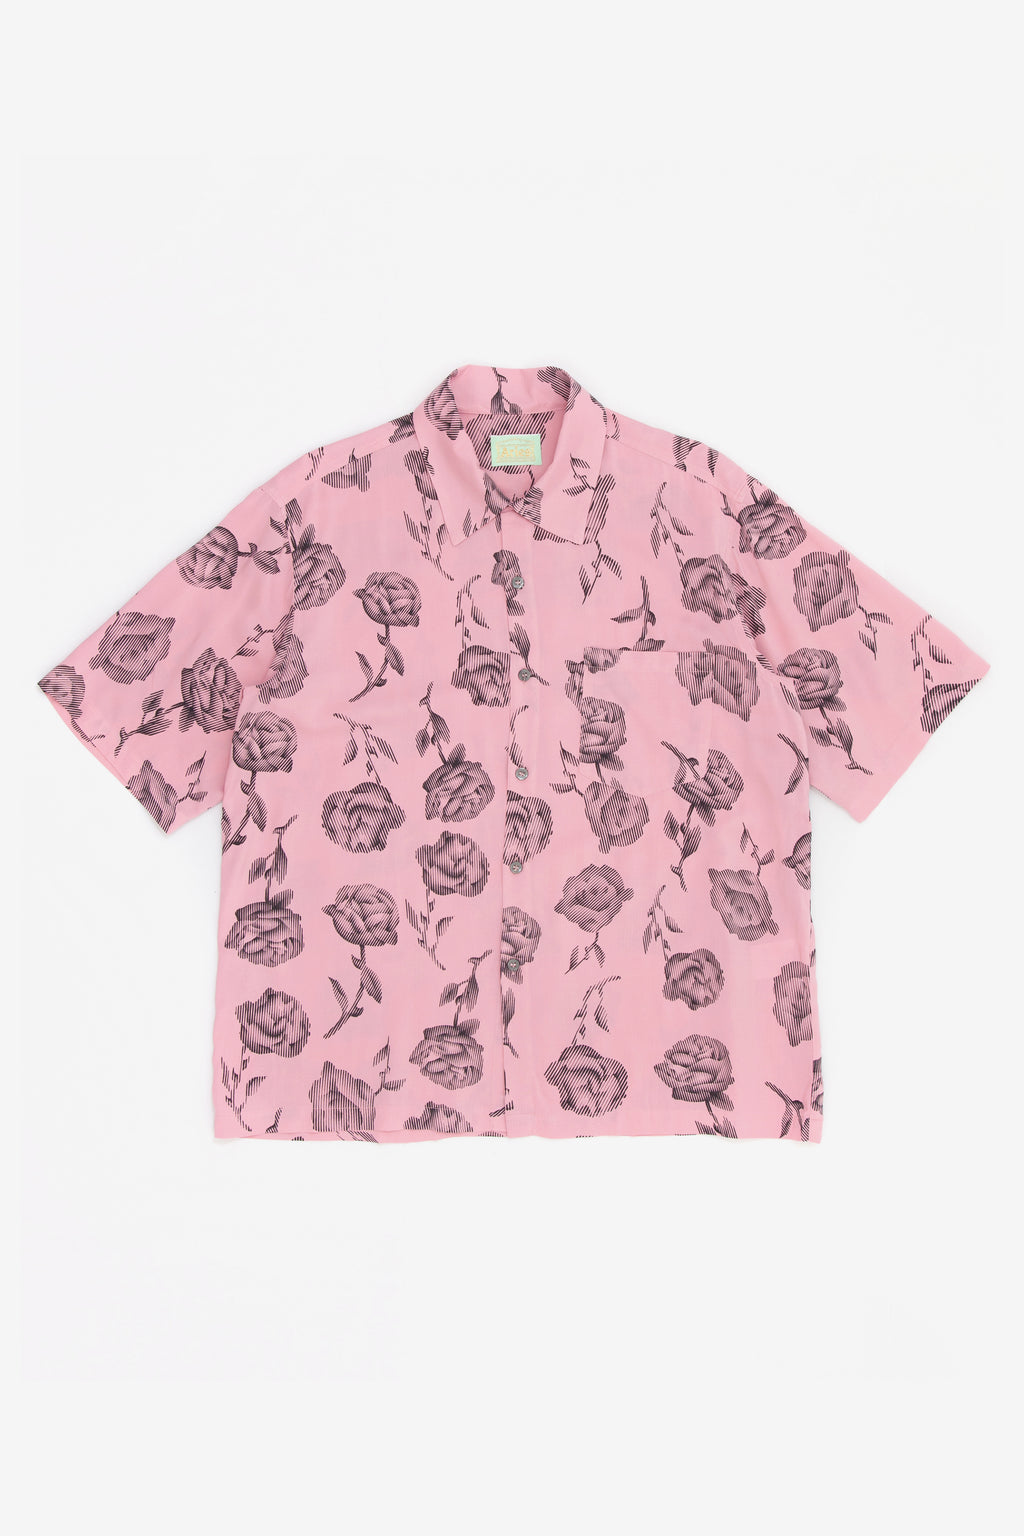 Aries Rose Hawaiian Shirt Pink